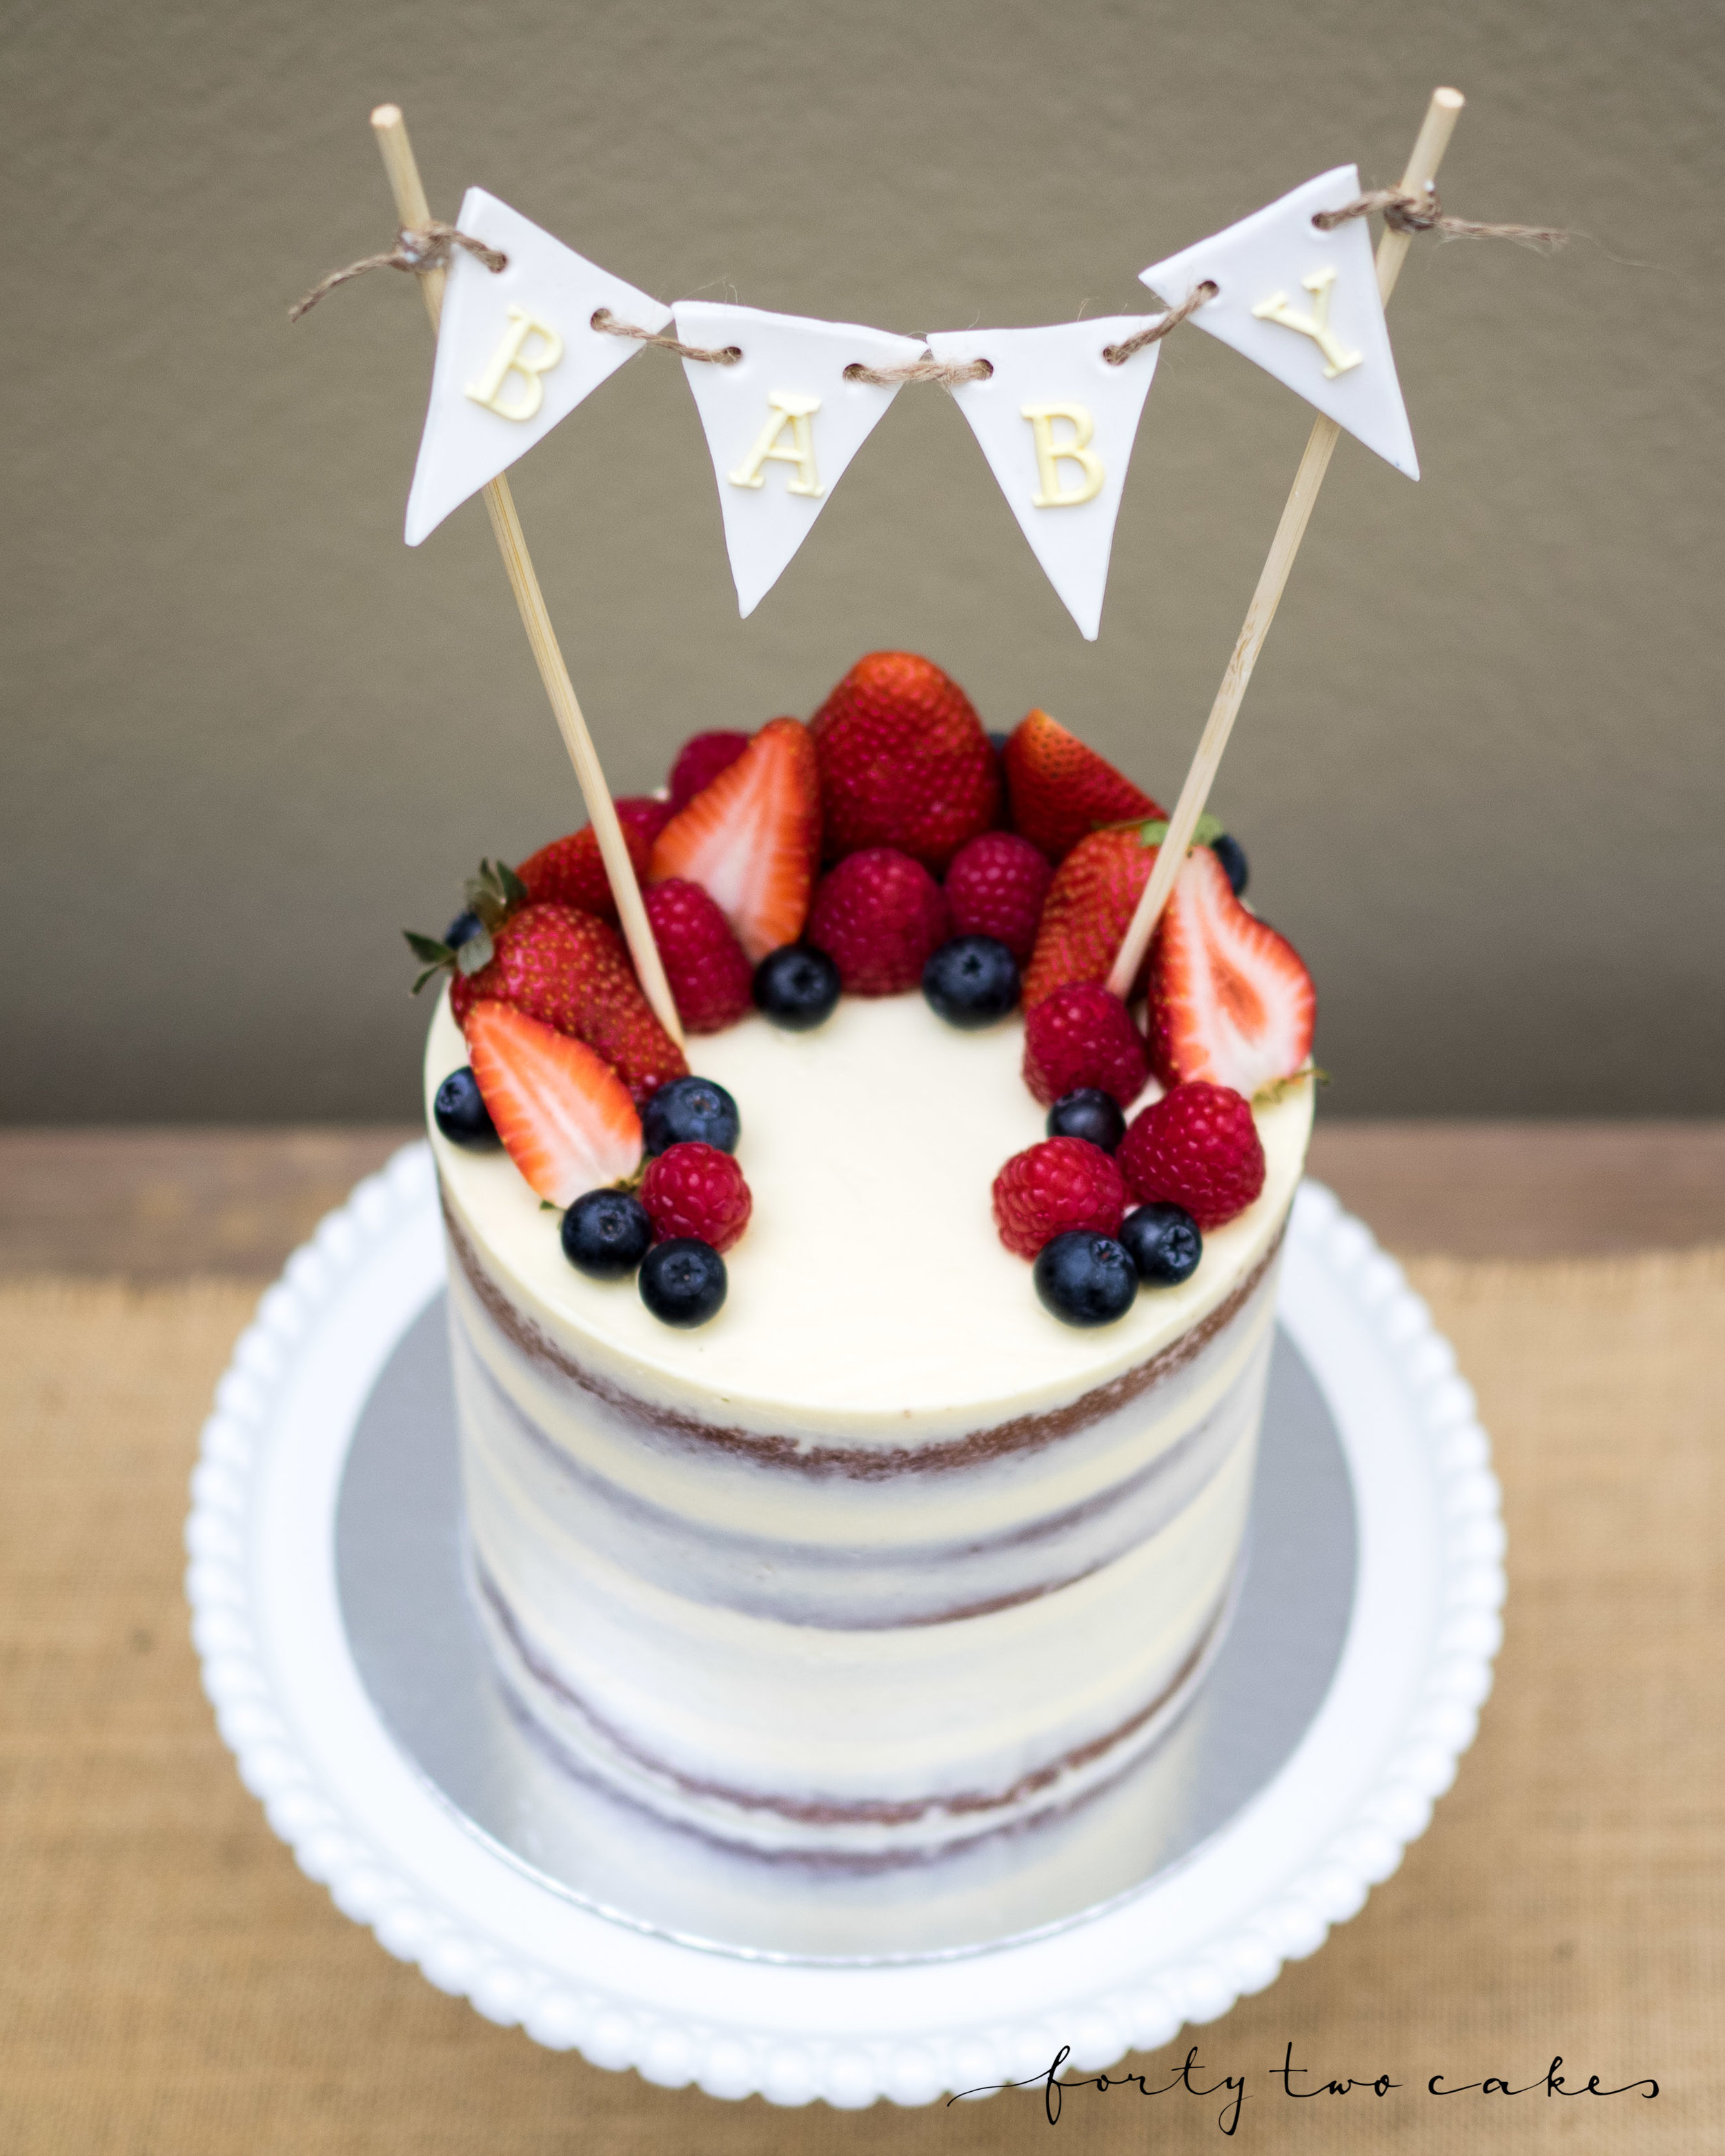 Forty-Two Cakes - Seminaked-06.jpg